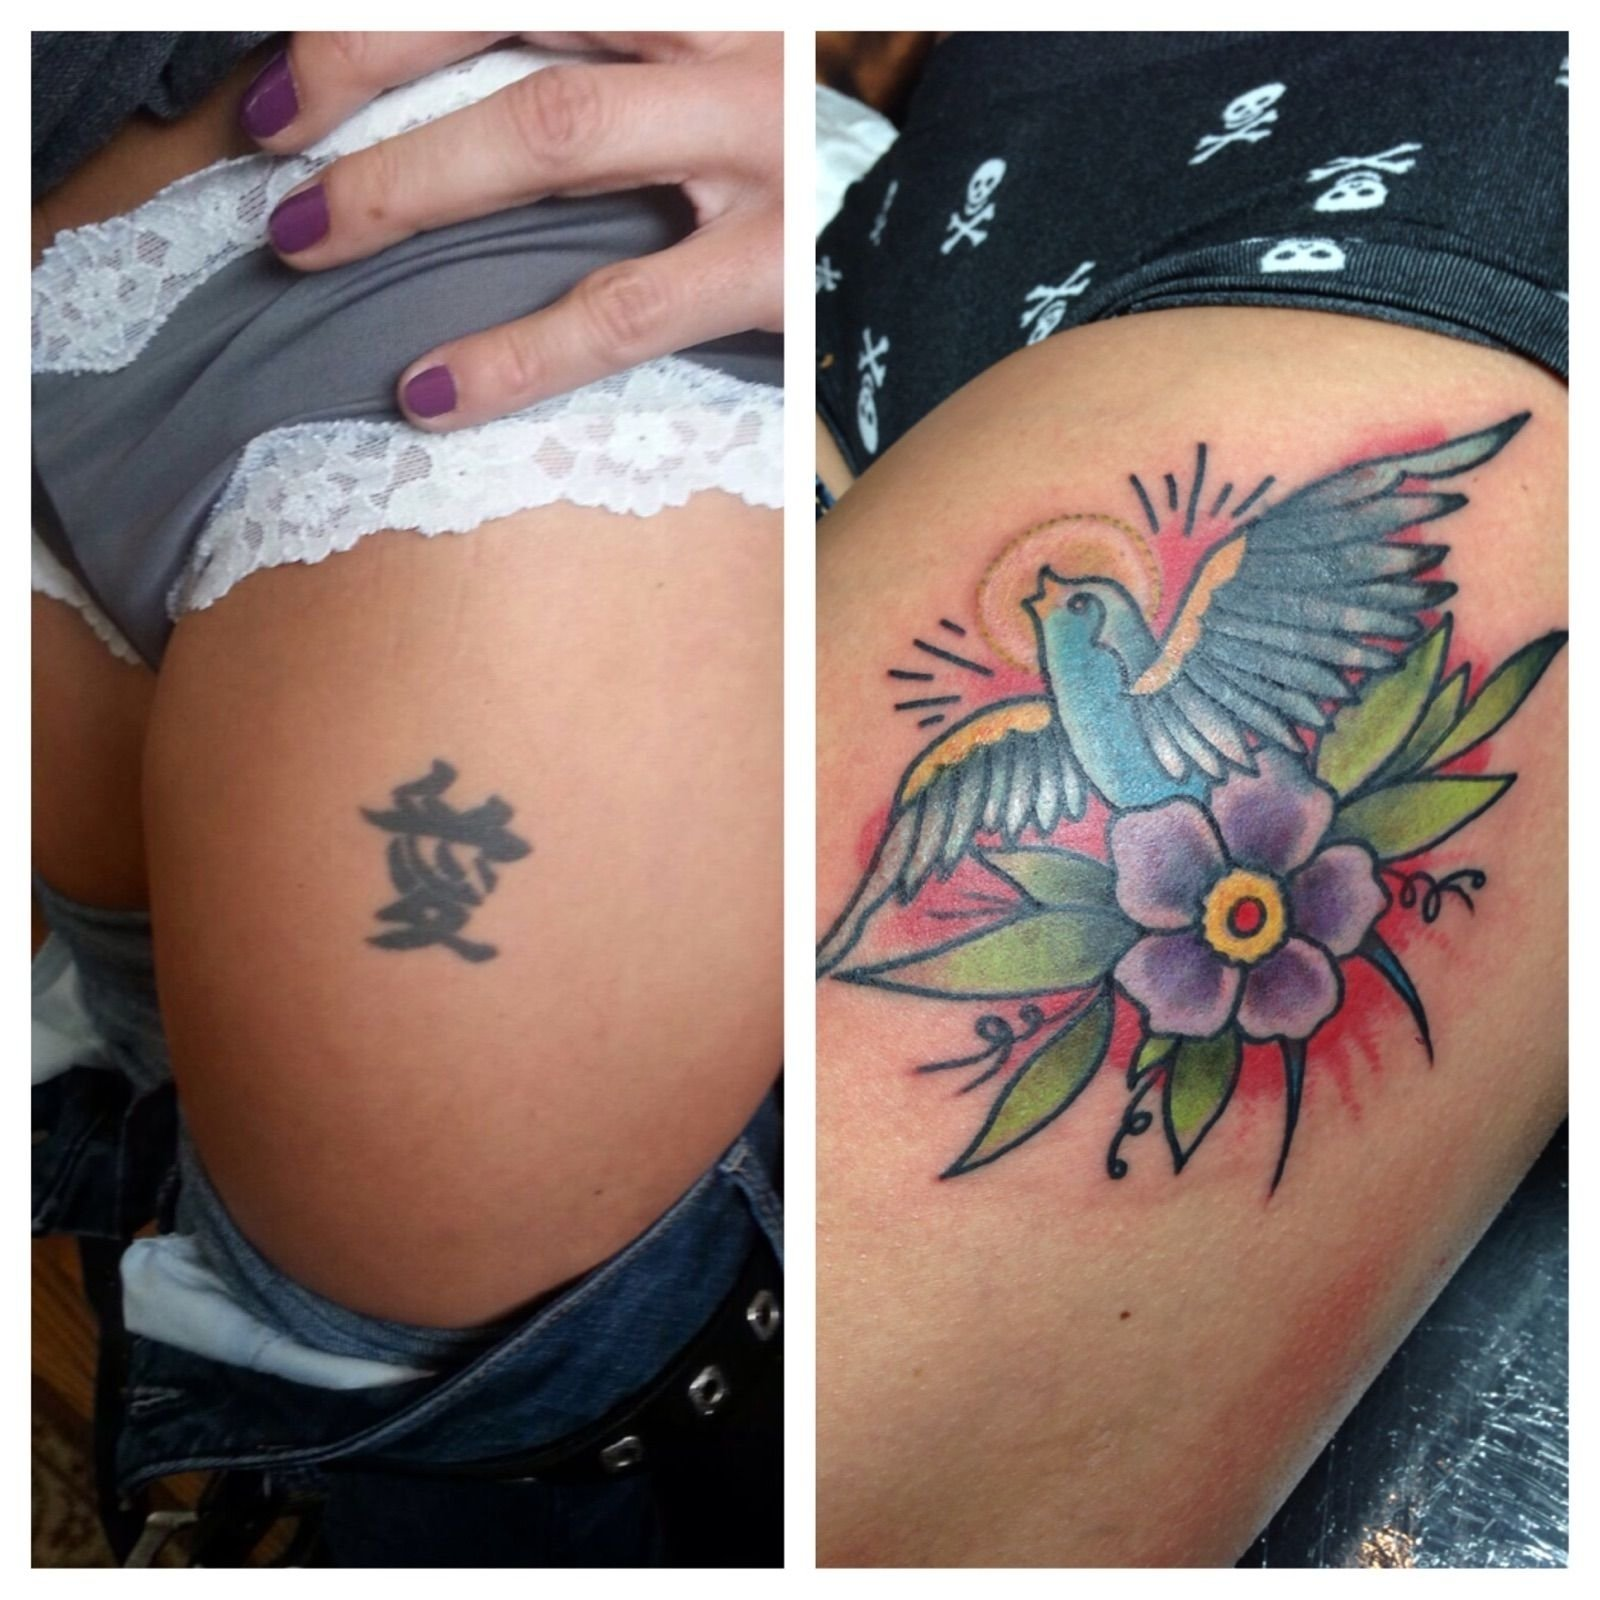 10 Nice Tattoo Ideas For Cover Ups tattoo cover up ideas 1 2020